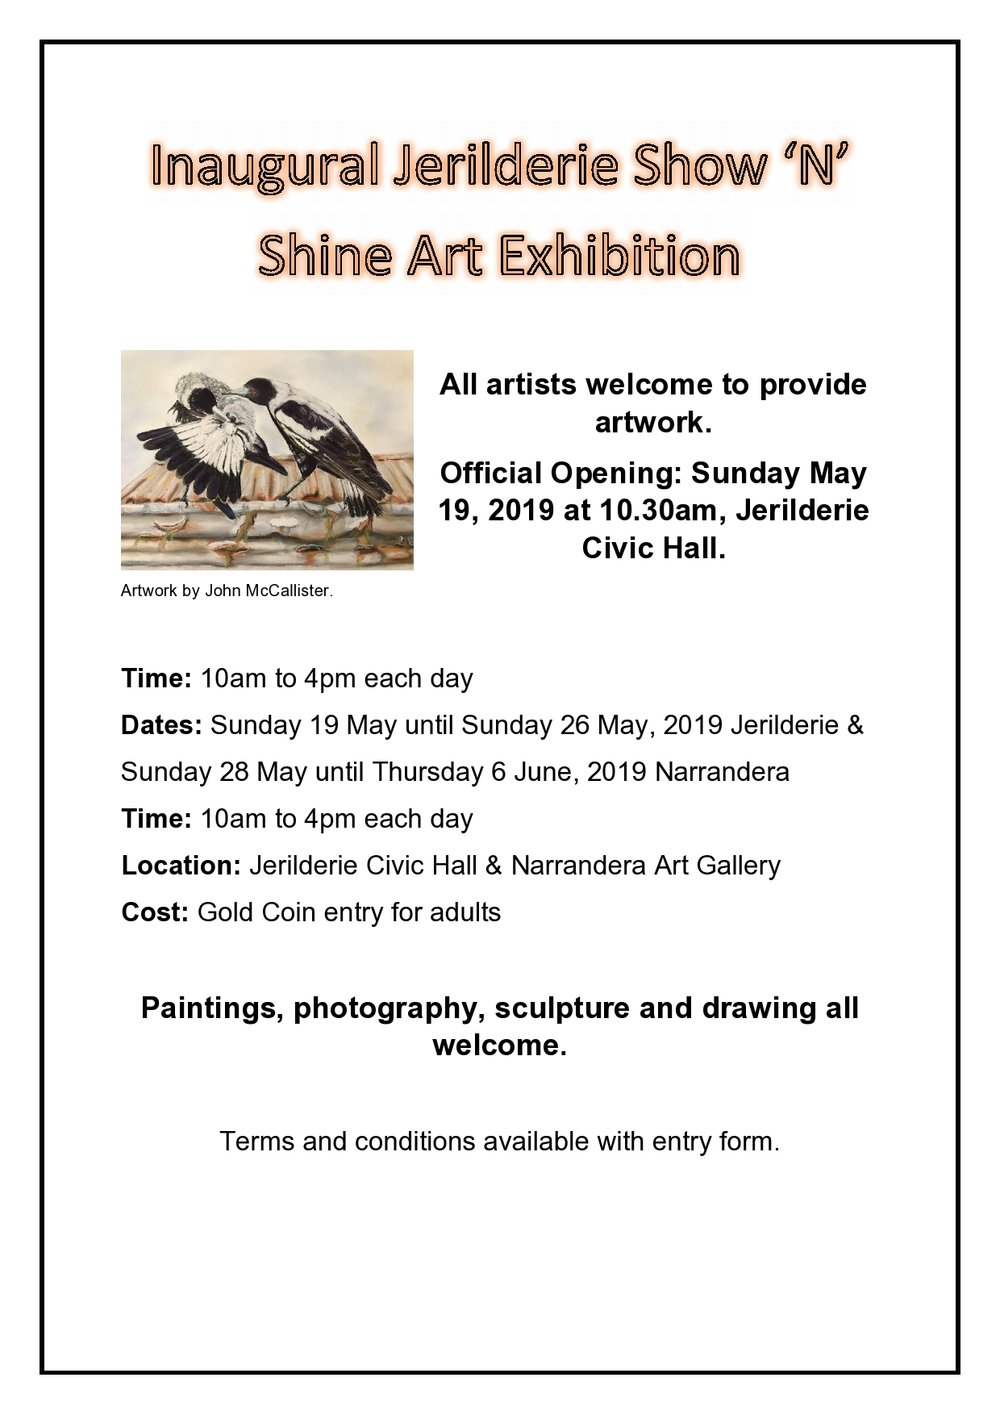 KEY DATES  17- 18 May - Exhibition artworks delivered  19-26 May – Exhibition open to public Jerilderie Civic Hall  28 May – 6 June – Exhibition open to public Narrendera Art Gallery  8-9 June – Exhibition artwork collection   SUMMARY OF ENTRY TERMS  1. Artwork must be original artworks by the artist  2. Artworks must have clearly marked, with Artist name, Title, price on back of artwork and entry form completed.  3. Artworks are to be no larger than 1.5m in height or width  4. The competition is open to all painting, drawing, photography and sculpture  5. 2D artworks must be suitably framed or stretched and fitted with hanging wire and D hangers  6. All exhibition and online artworks must be available for purchase  7. There is a 15% commission on all sold artworks  8. Artists are responsible for delivery of their artwork to the display venue and collection of unsold works on the designated days, at the nominated times  9. All reasonable care will be taken in the handling of the artwork, however organisers will take no responsible for any loss or damage to artworks while in its custody  10. Insurance for the artwork during exhibition and transit remains the responsibility of the artist  11. By entering, the artist consents to images of their work being reproduced and their biographical information used for the purpose of advertising the exhibition  12. Please note only 40 artworks will be transported to Narrendera Art Gallery for the second part of the exhibition. The organisers will make the decision on which artworks will be displayed at this second location.  13. Payment for sold artwork will not occur until end of both exhibitions.  14. Sold artworks to be collected after the exhibition is completed, or sent at the expense of the buyer.    And please note, entrants accept the full terms and conditions when entering and should familiarise themselves with these conditions.